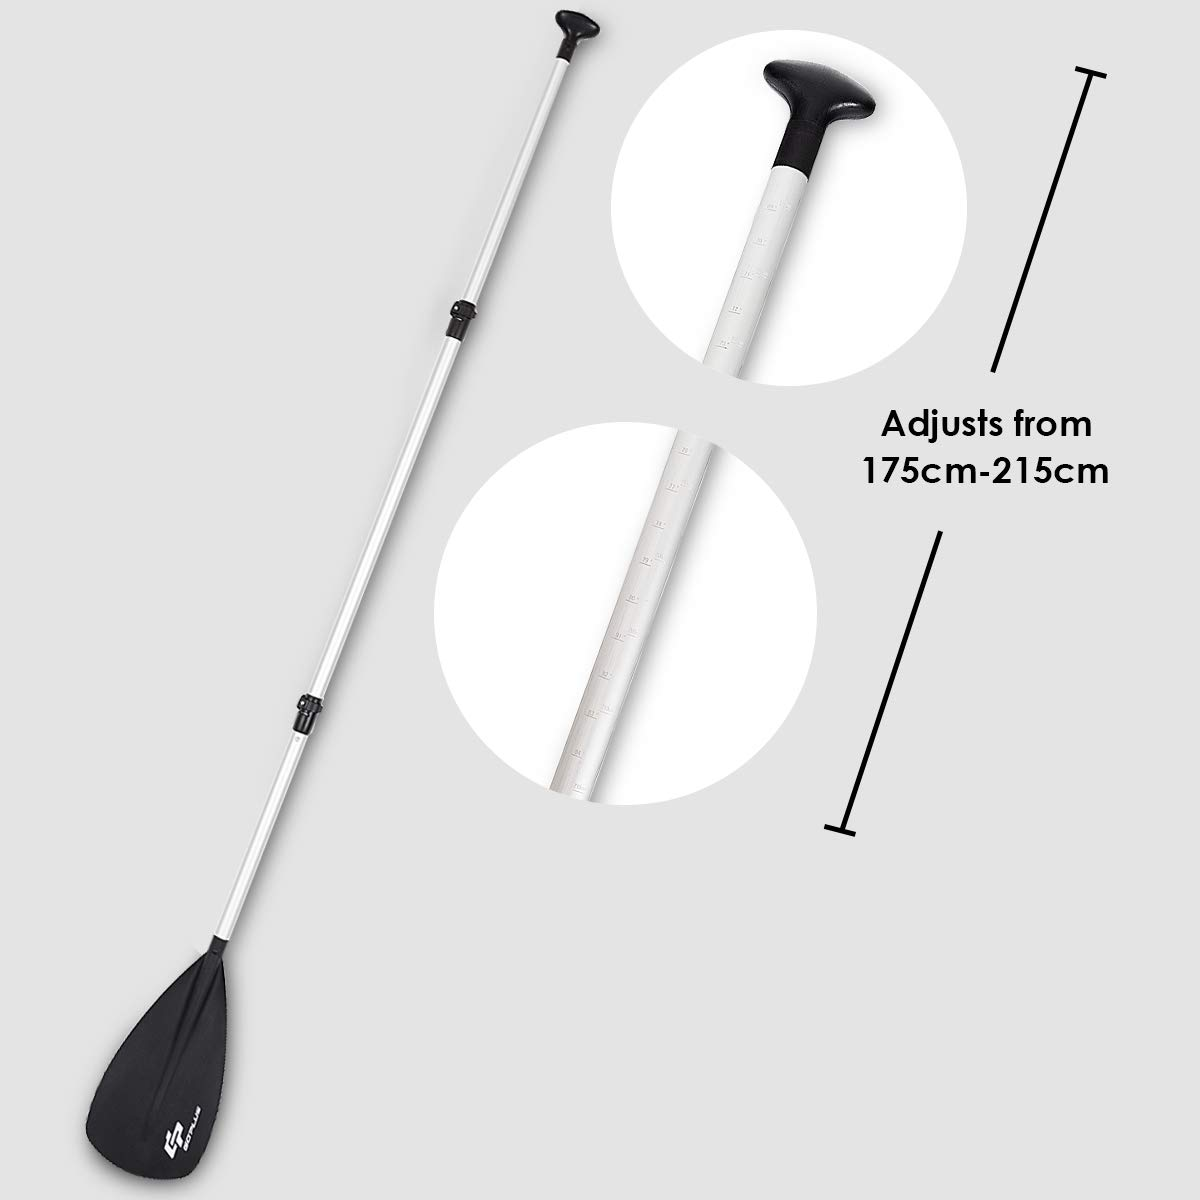 Stand Up Paddleboard Paddle Canoeing 3- piece Extendable Oar Aluminum Alloy Shaft COSTWAY Telescopic Paddle Kayaking with T-shape Handle for Boating Jet Ski